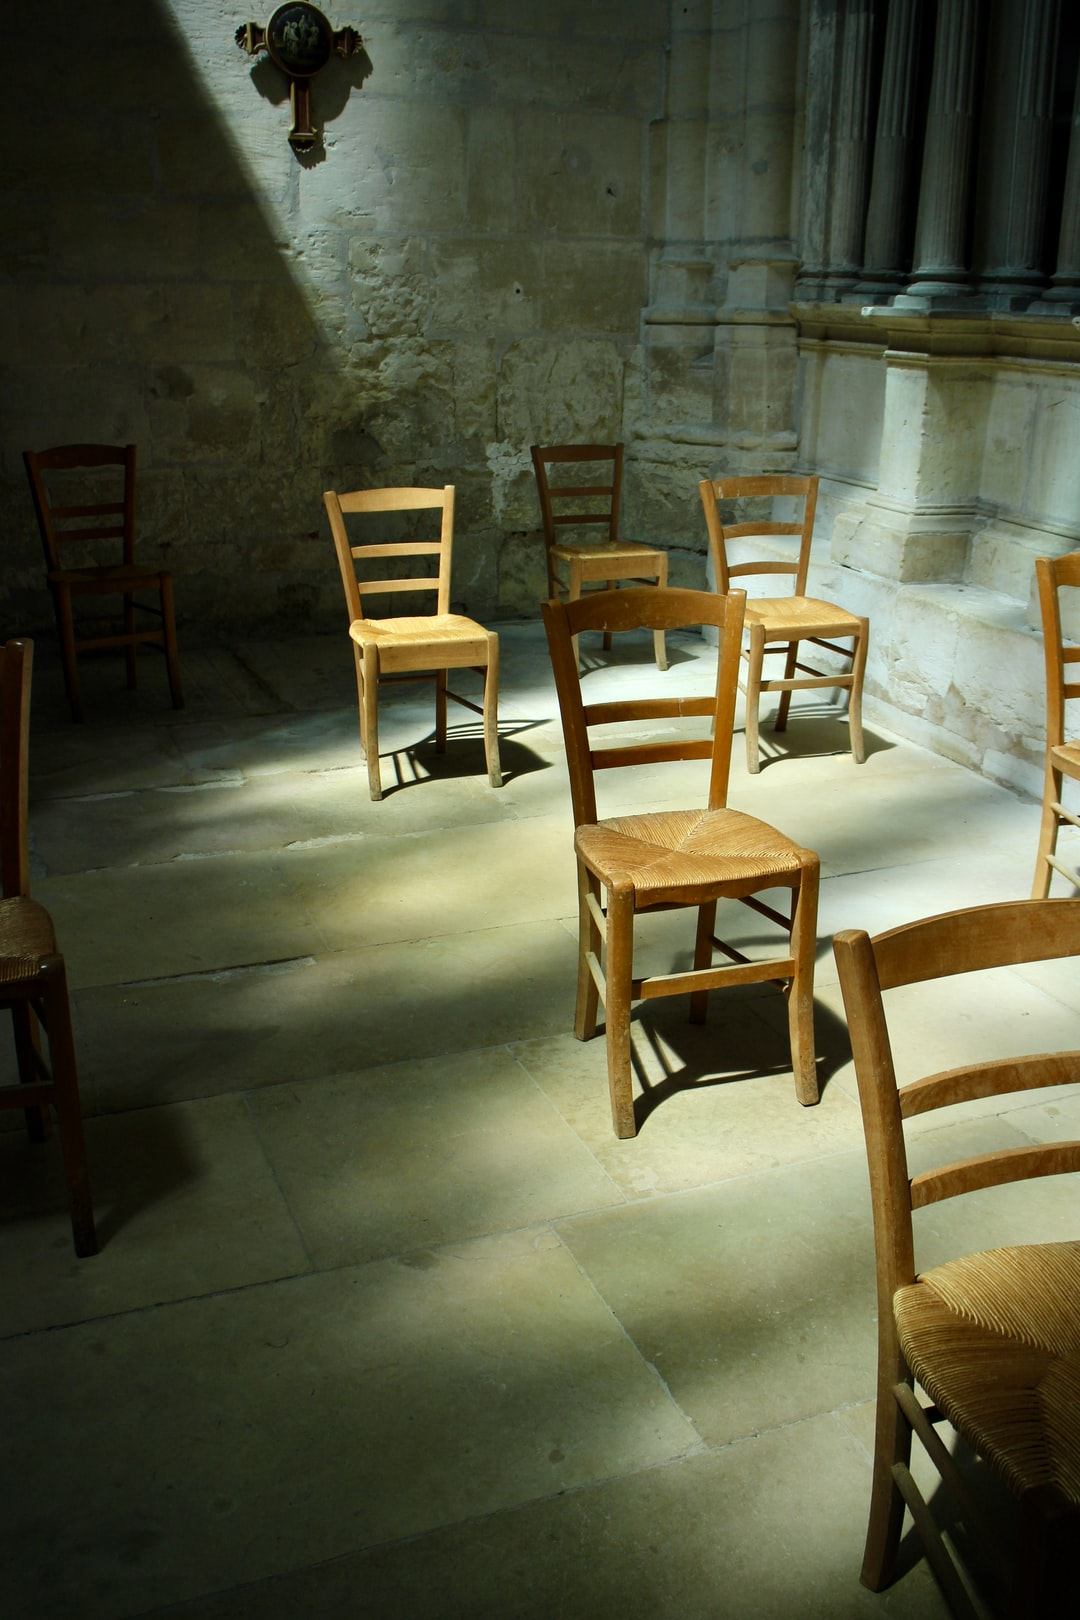 Spaced seats in a French church during Covid-19 pandemic